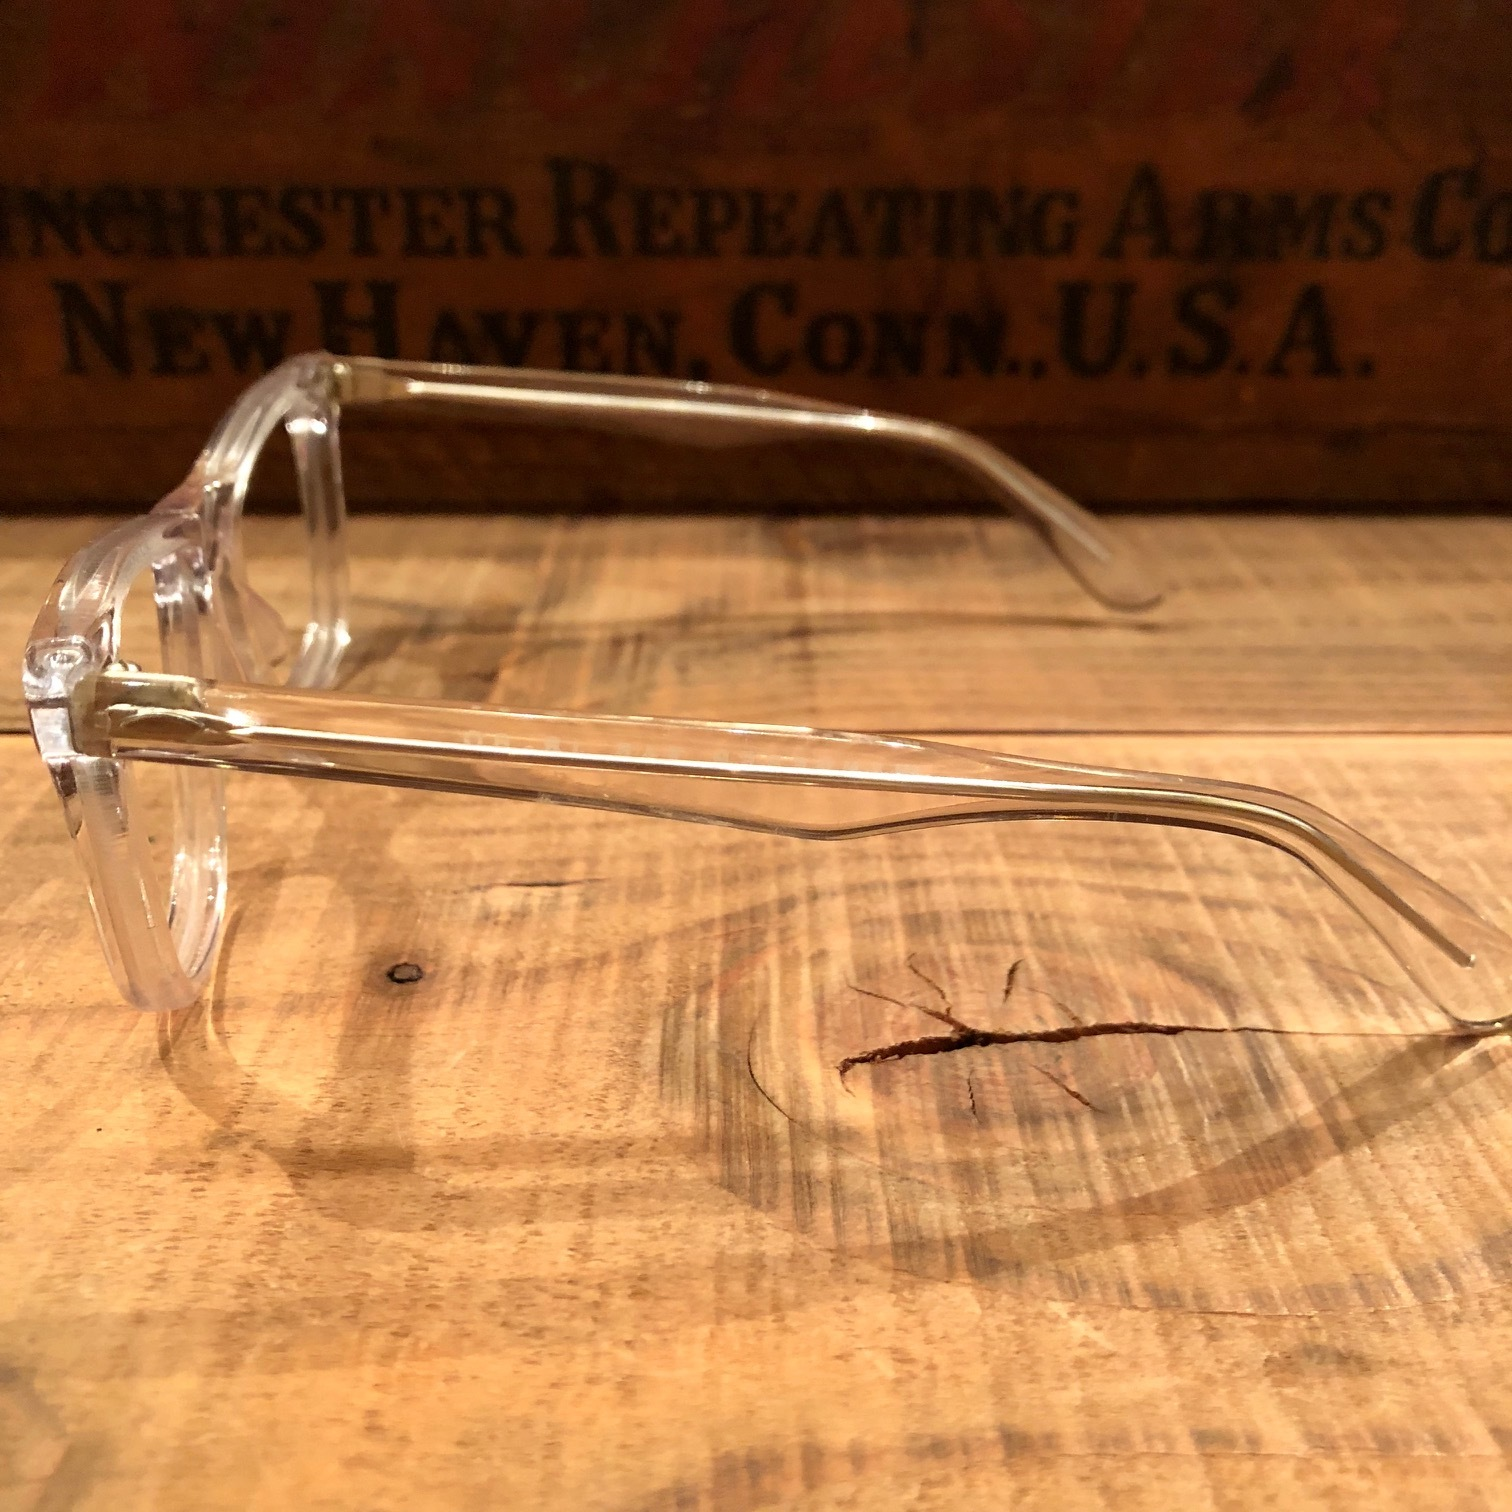 "1950-60s "" VICTORY optical \"" - VINTAGE - wellington CLEAR CELL FRAME - mintconditions - ._d0172088_22171664.jpg"